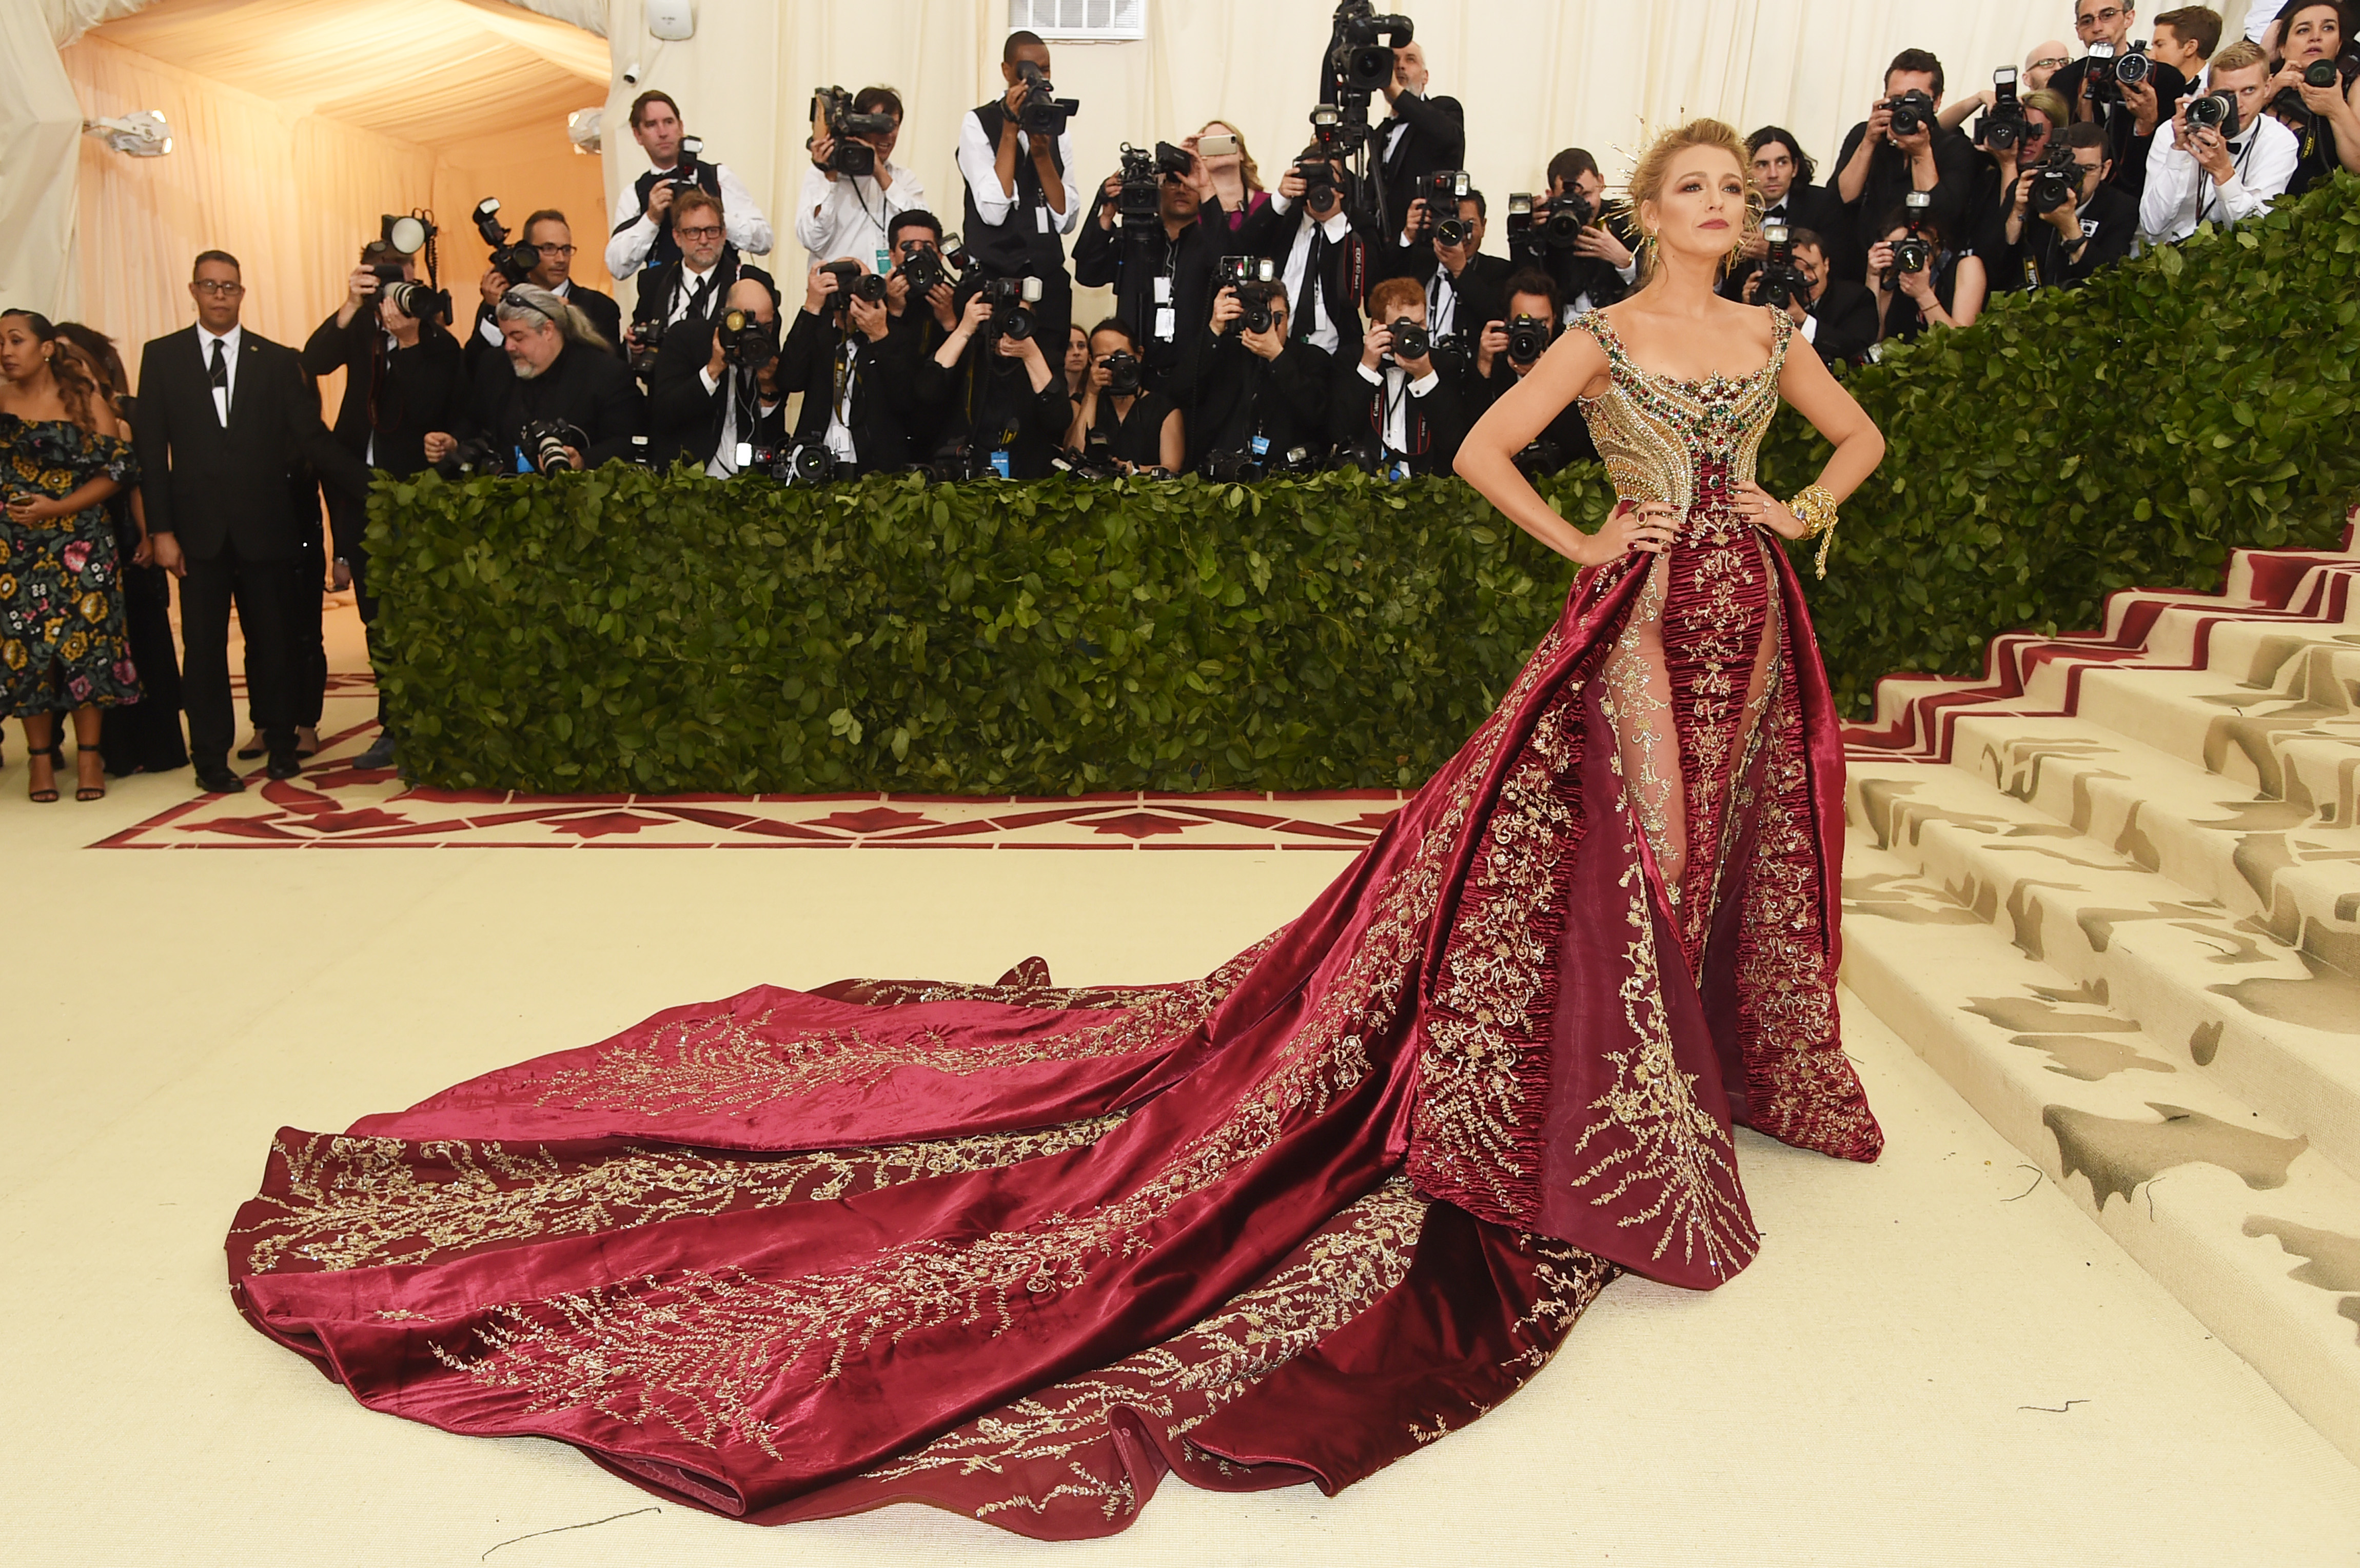 Blake-Lively-Was-Completely-Deserving-Of-The-Crown-On-Her-Head-At-The-2018-Met-Gala